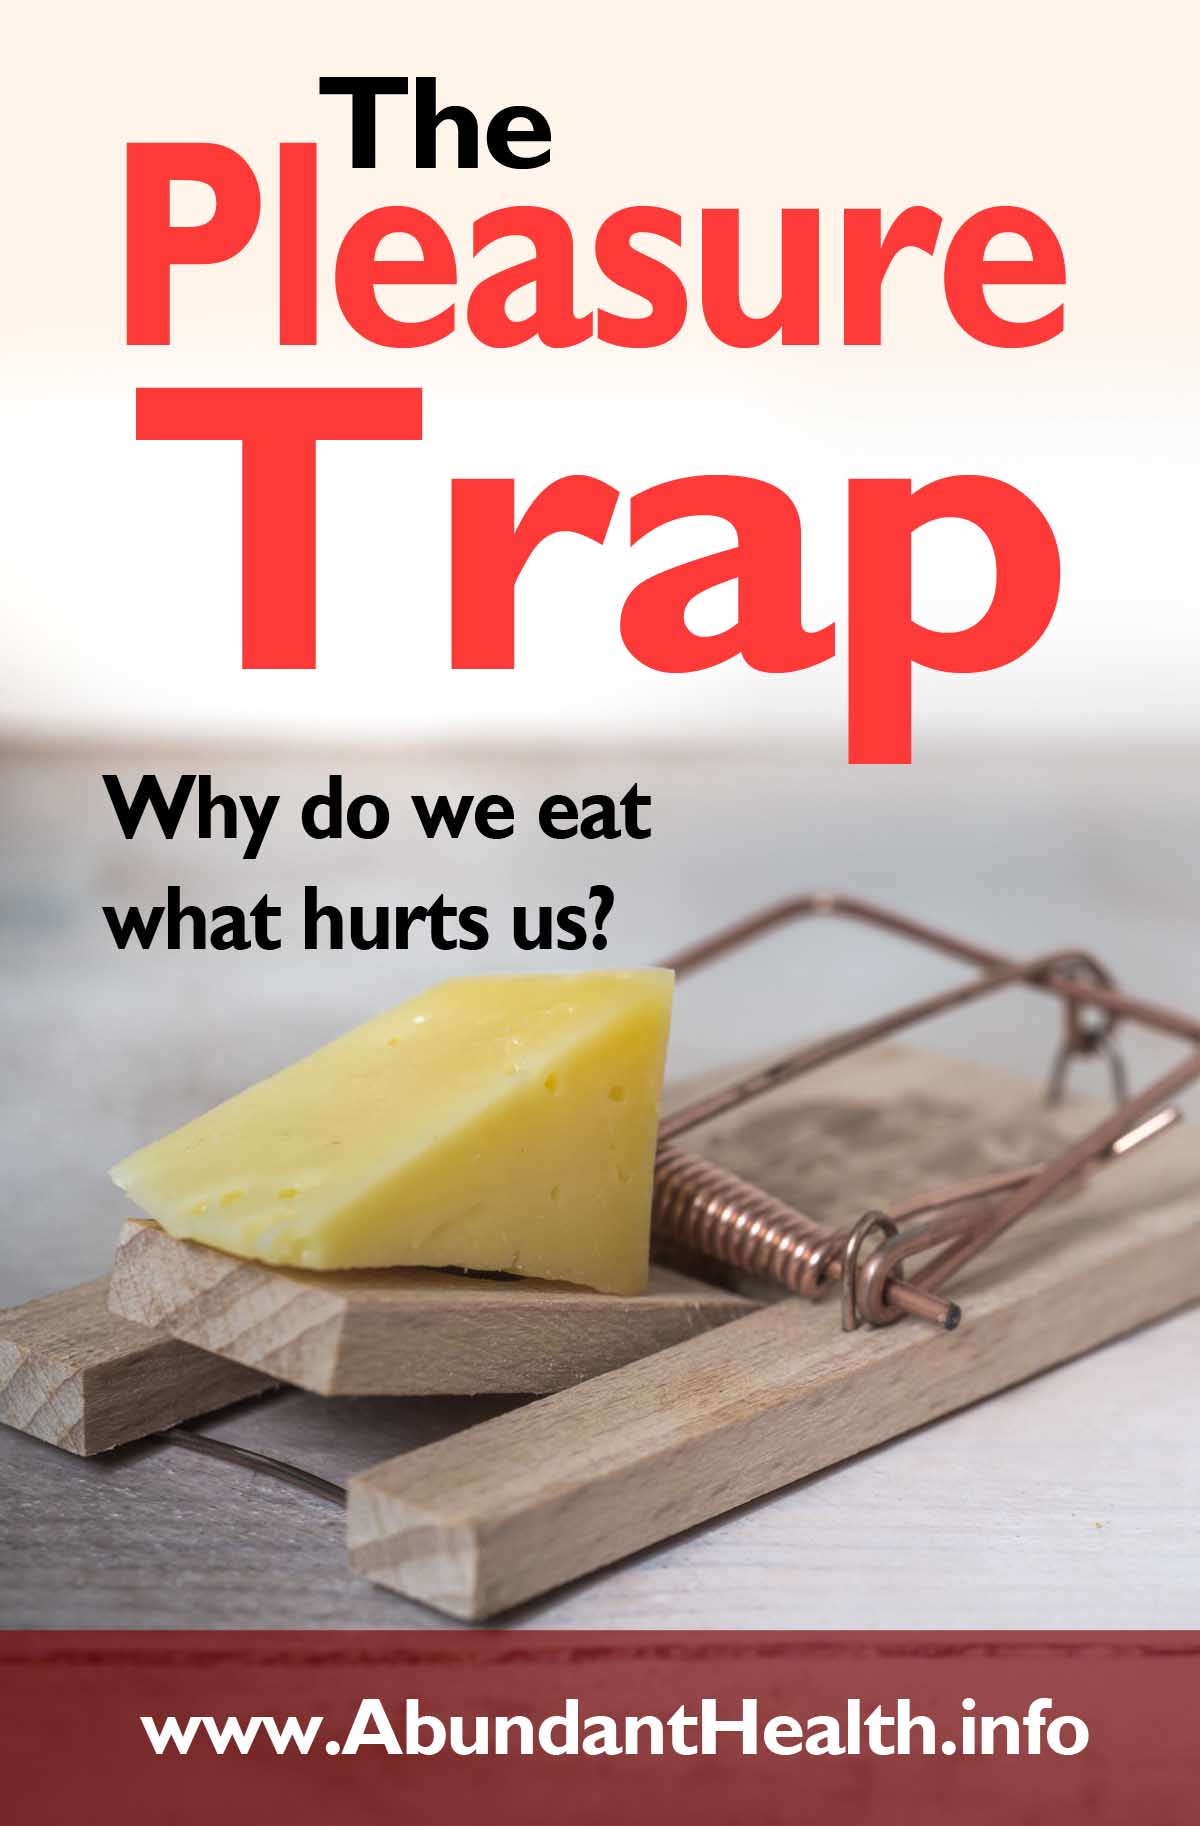 The Pleasure Trap - Why do we eat what hurts us?